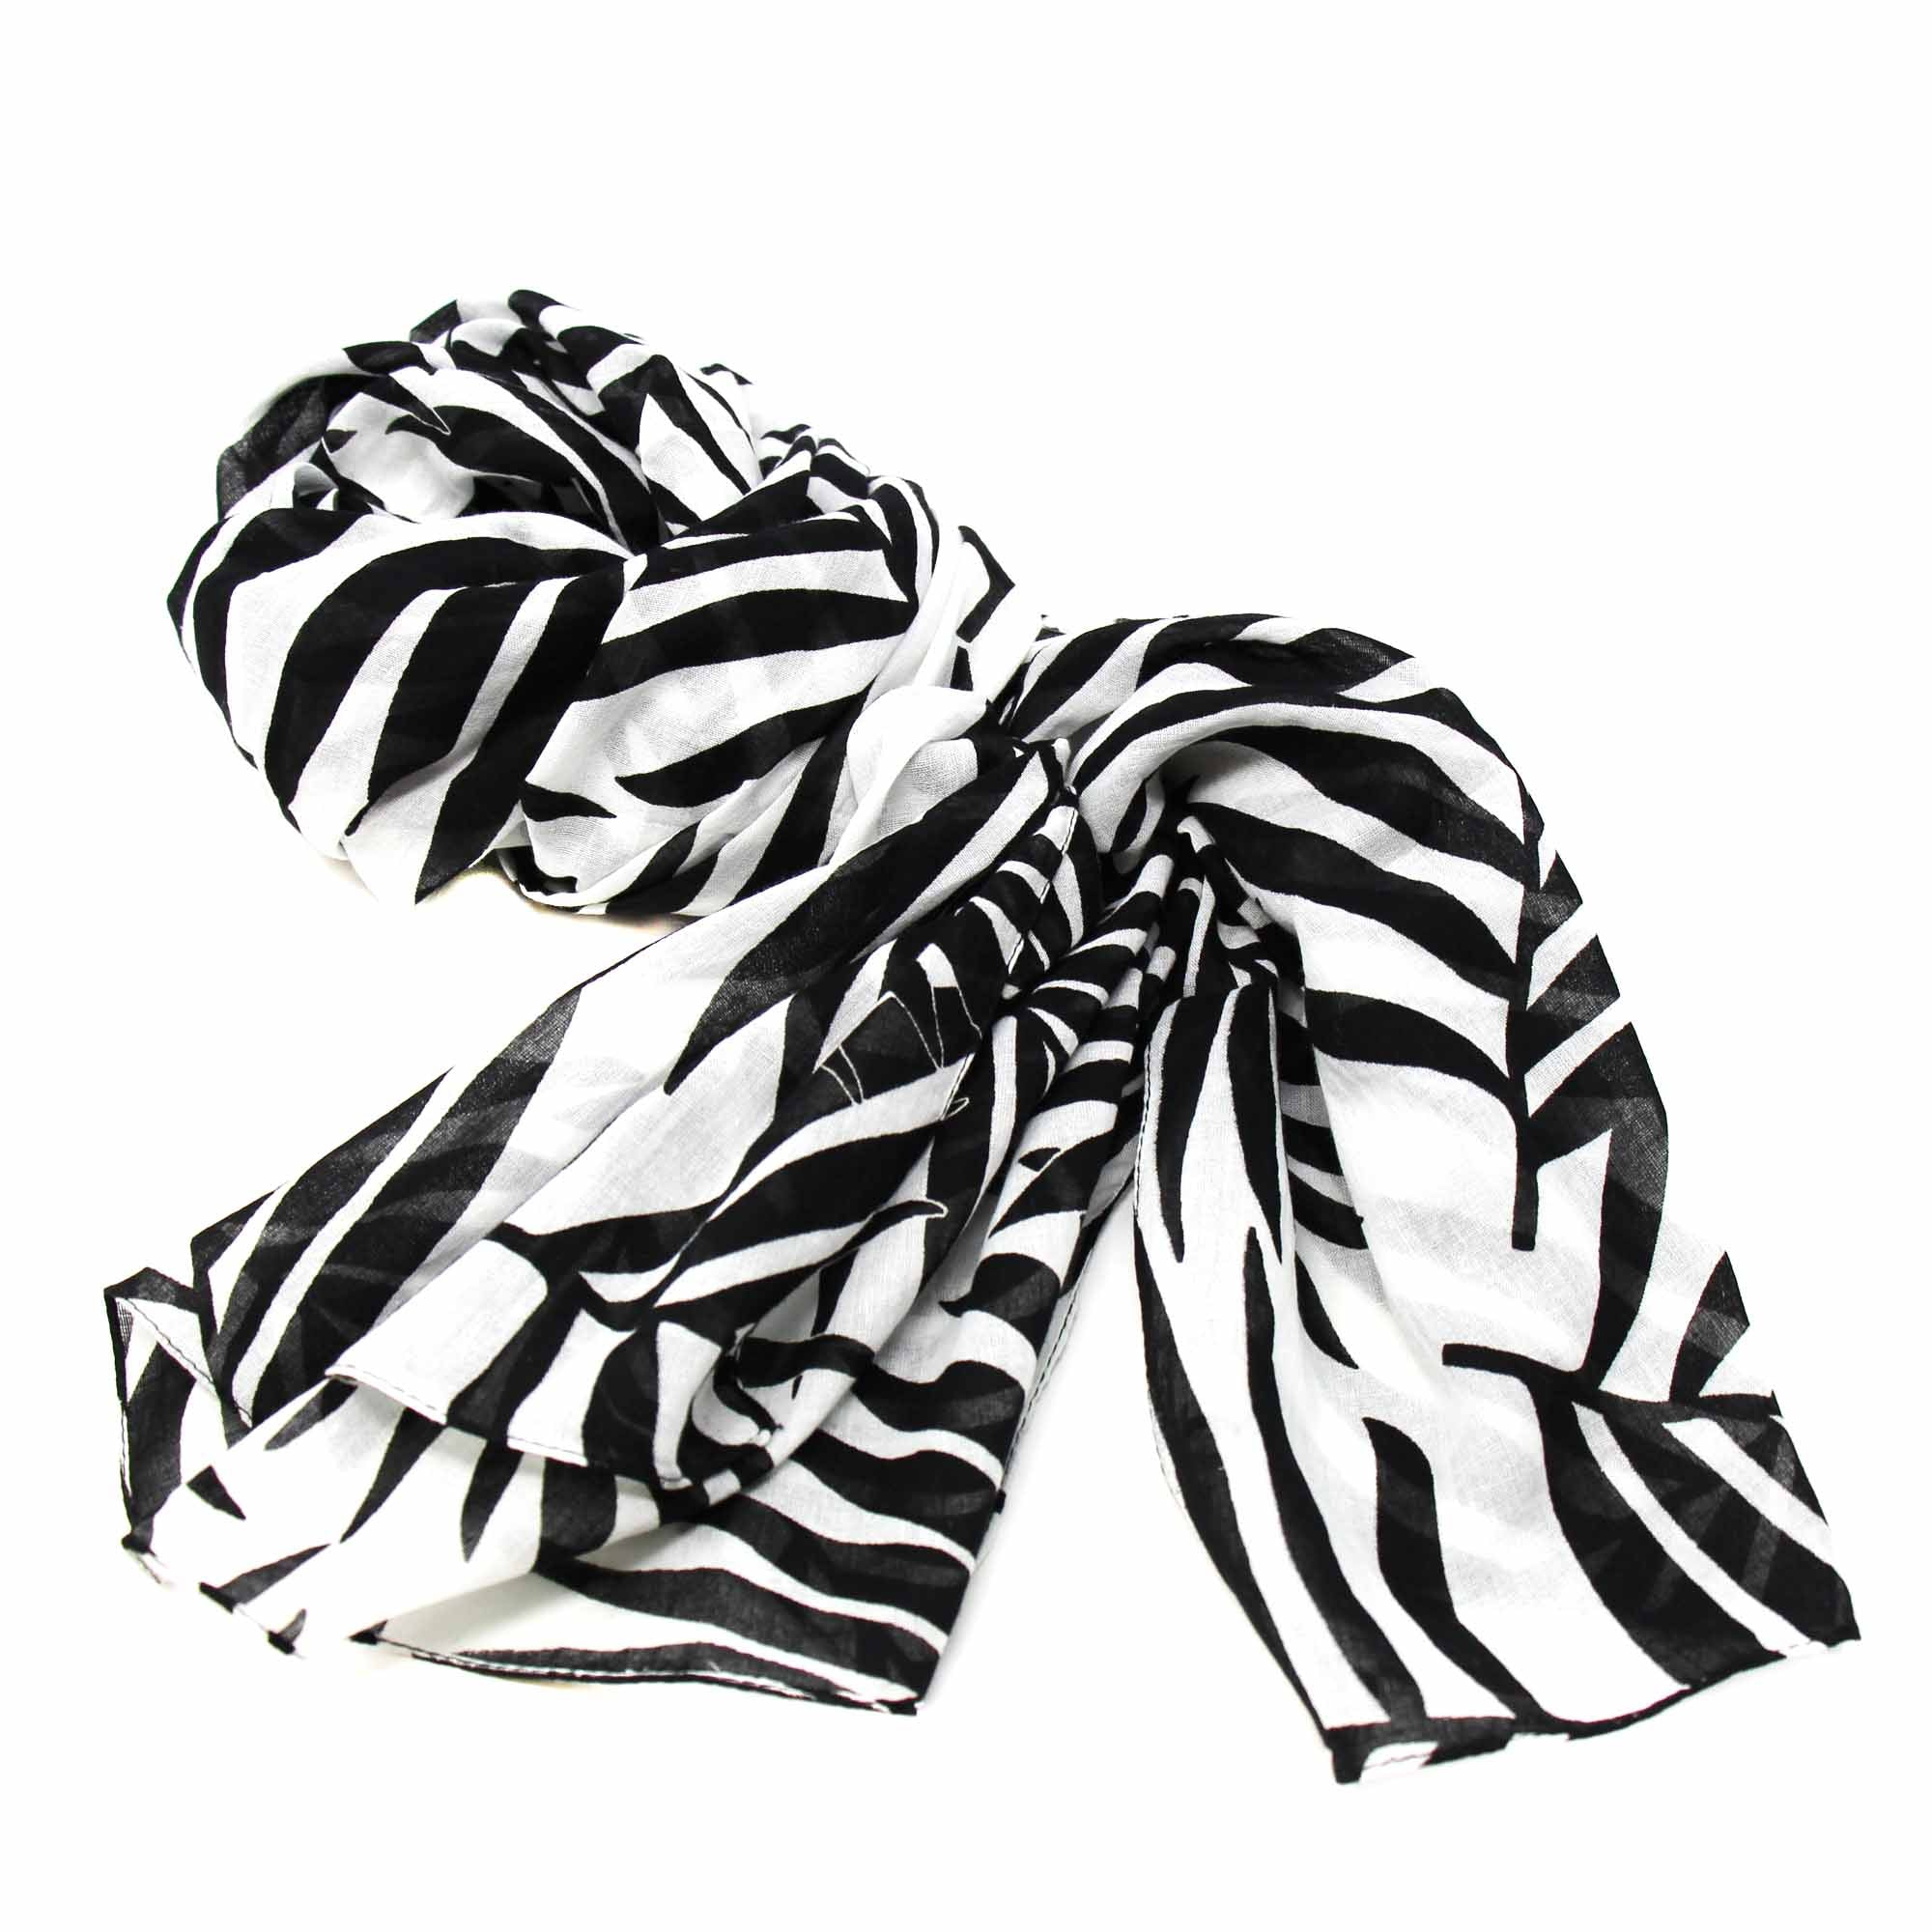 Hand-printed Cotton Scarf, Black & White Leaves Design